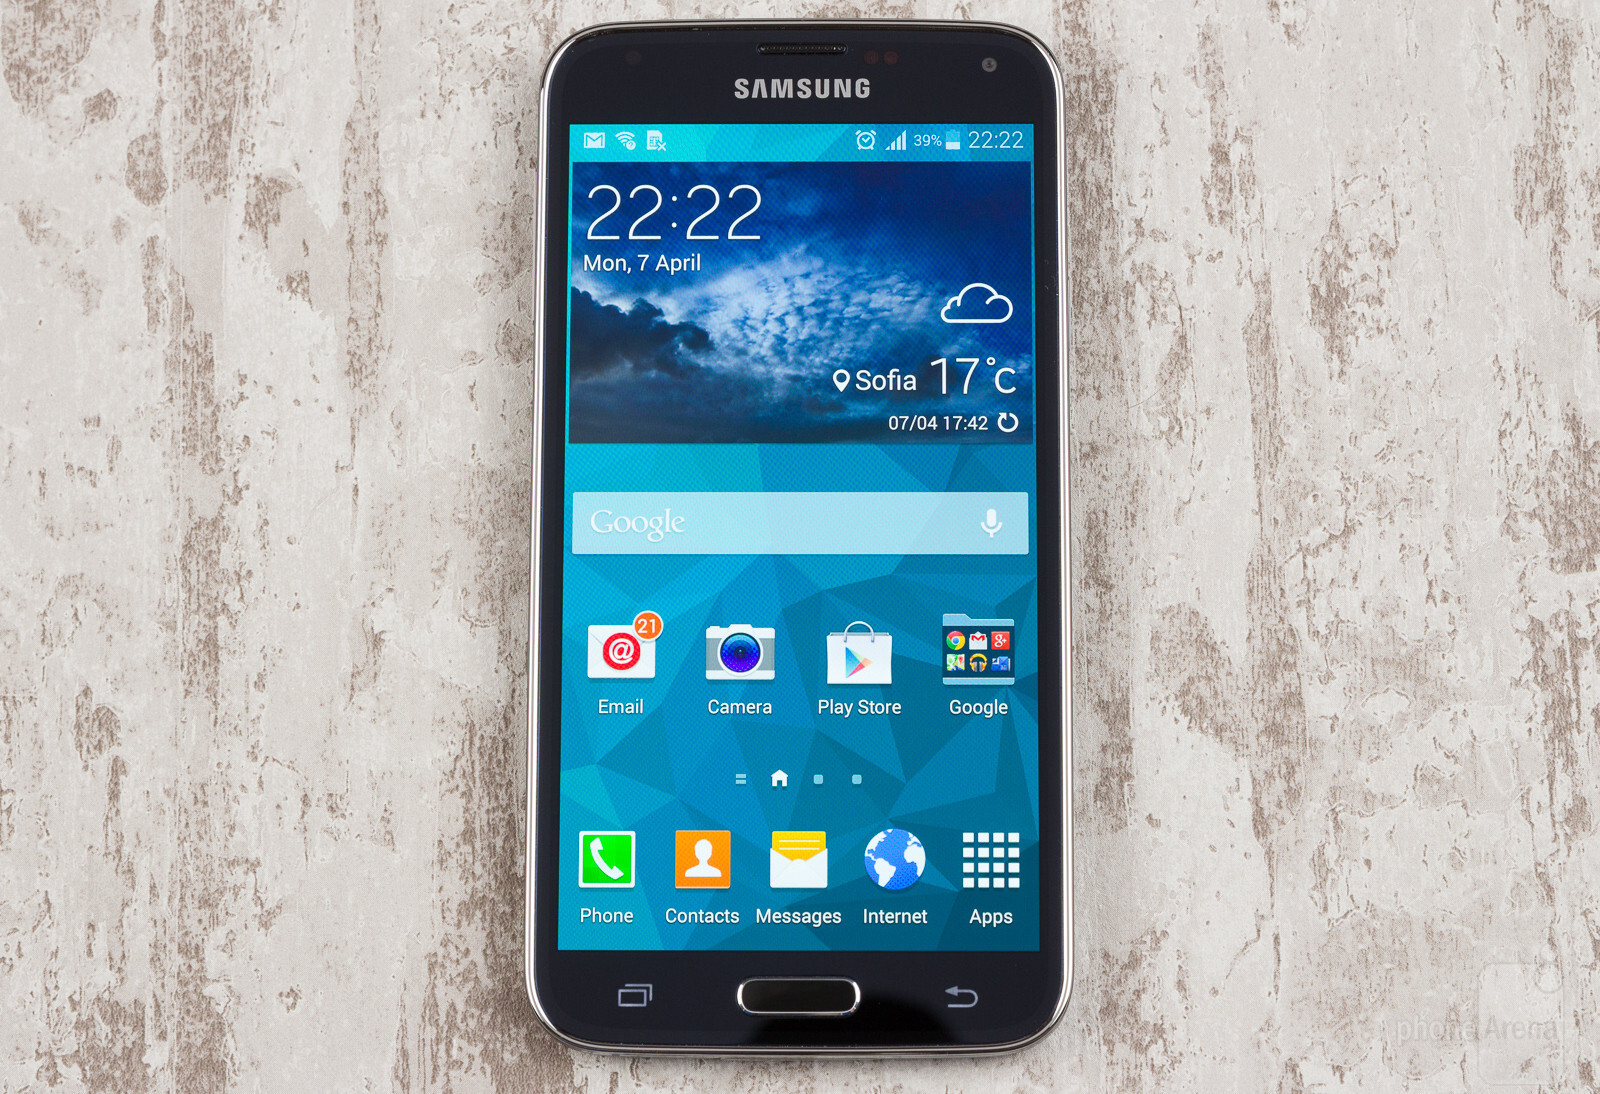 Samsung Galaxy S5 review Q&A: your questions answered - PhoneArena